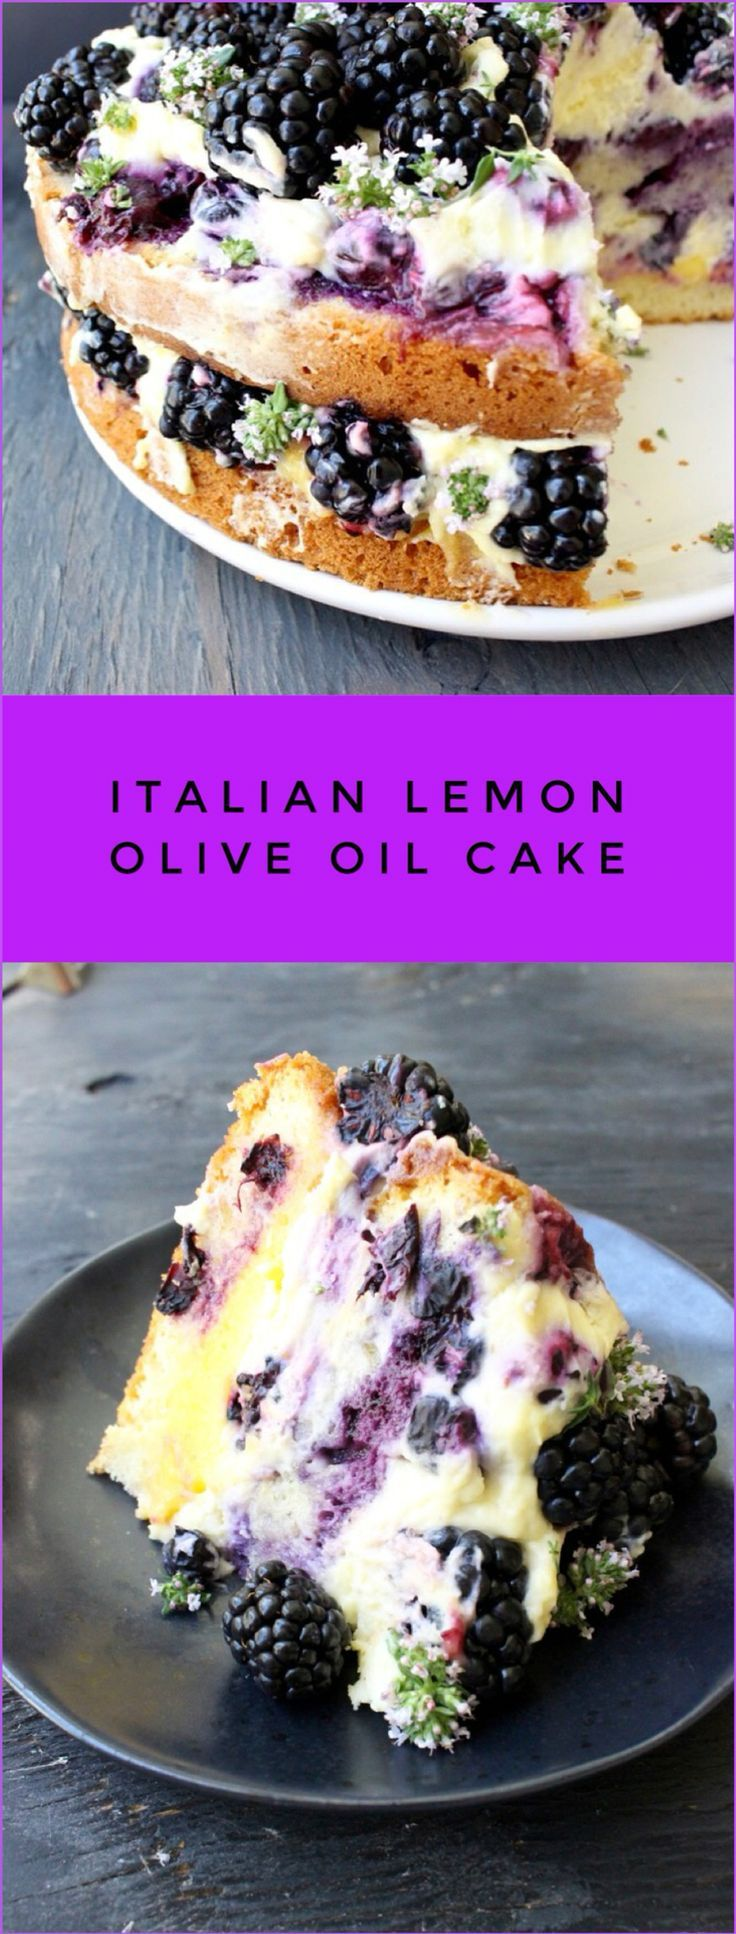 Lemon Olive Oil Cake Recipe with Berries, Whipped Mascarpone and Lemon Curd | http://CiaoFlorentina.com @CiaoFlorentina